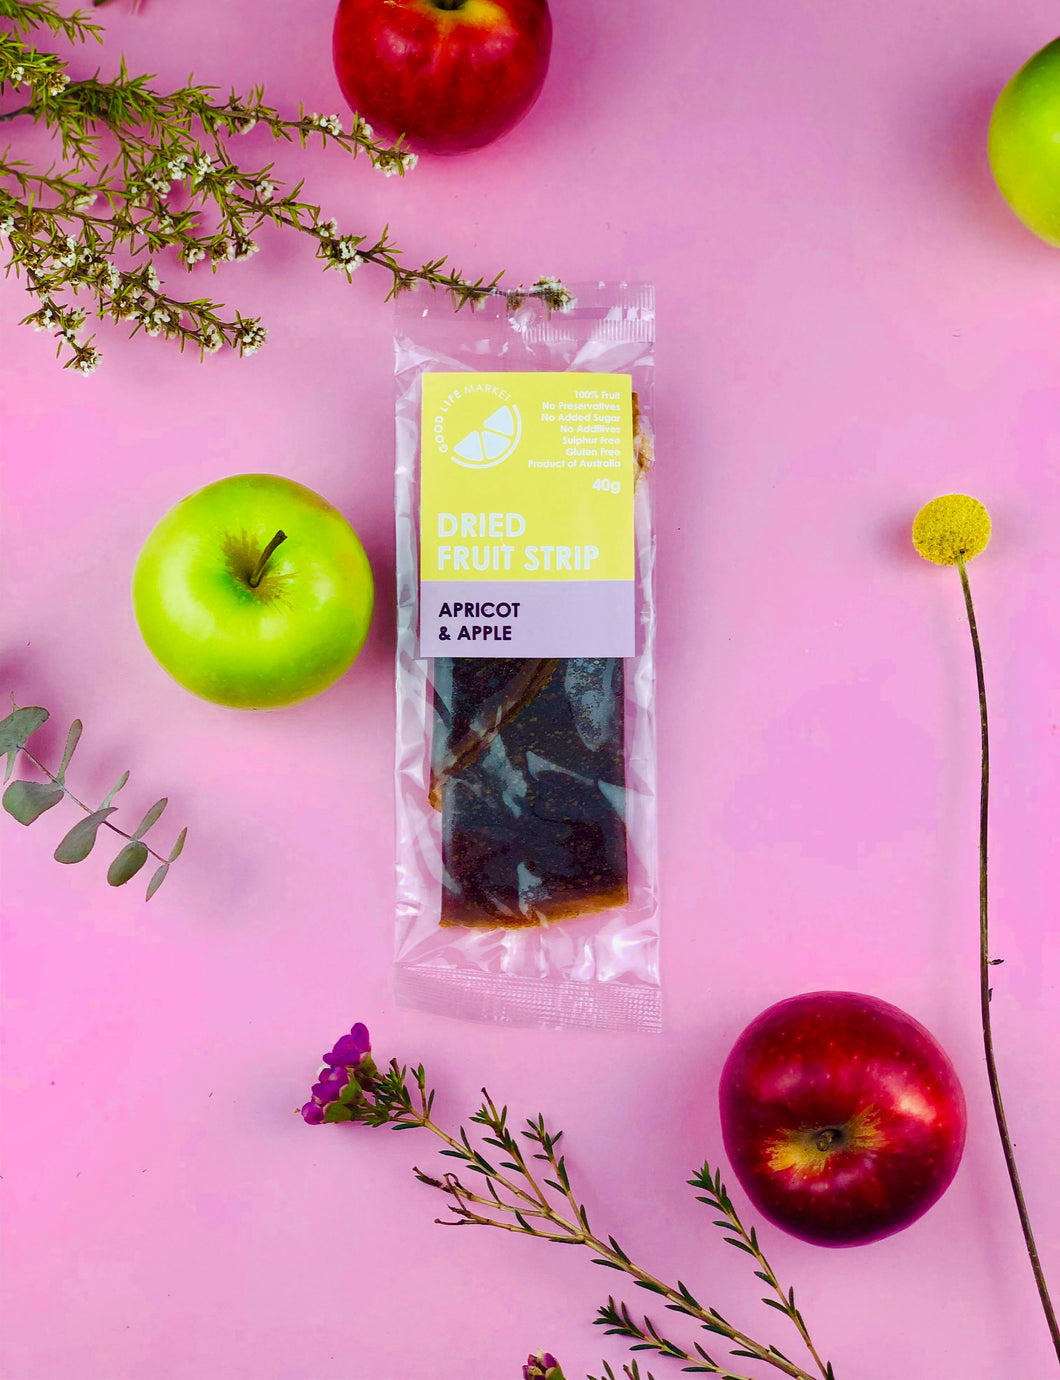 Apricot & Apple Dried Fruit Strip